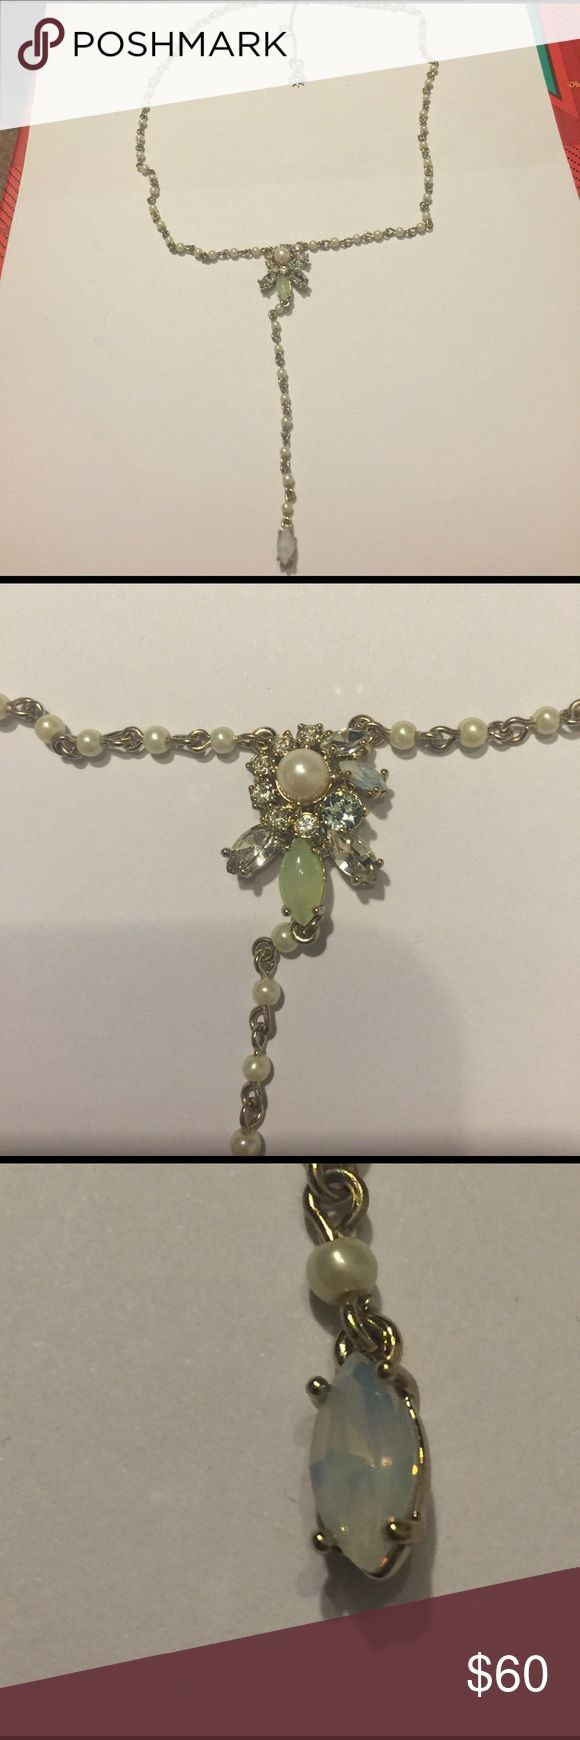 Marchesa pearl flower necklace Marchesa gold plated necklace with faux pearls and crystal flower accent.  Y shaped.  Nwot Marchesa Jewelry Necklaces